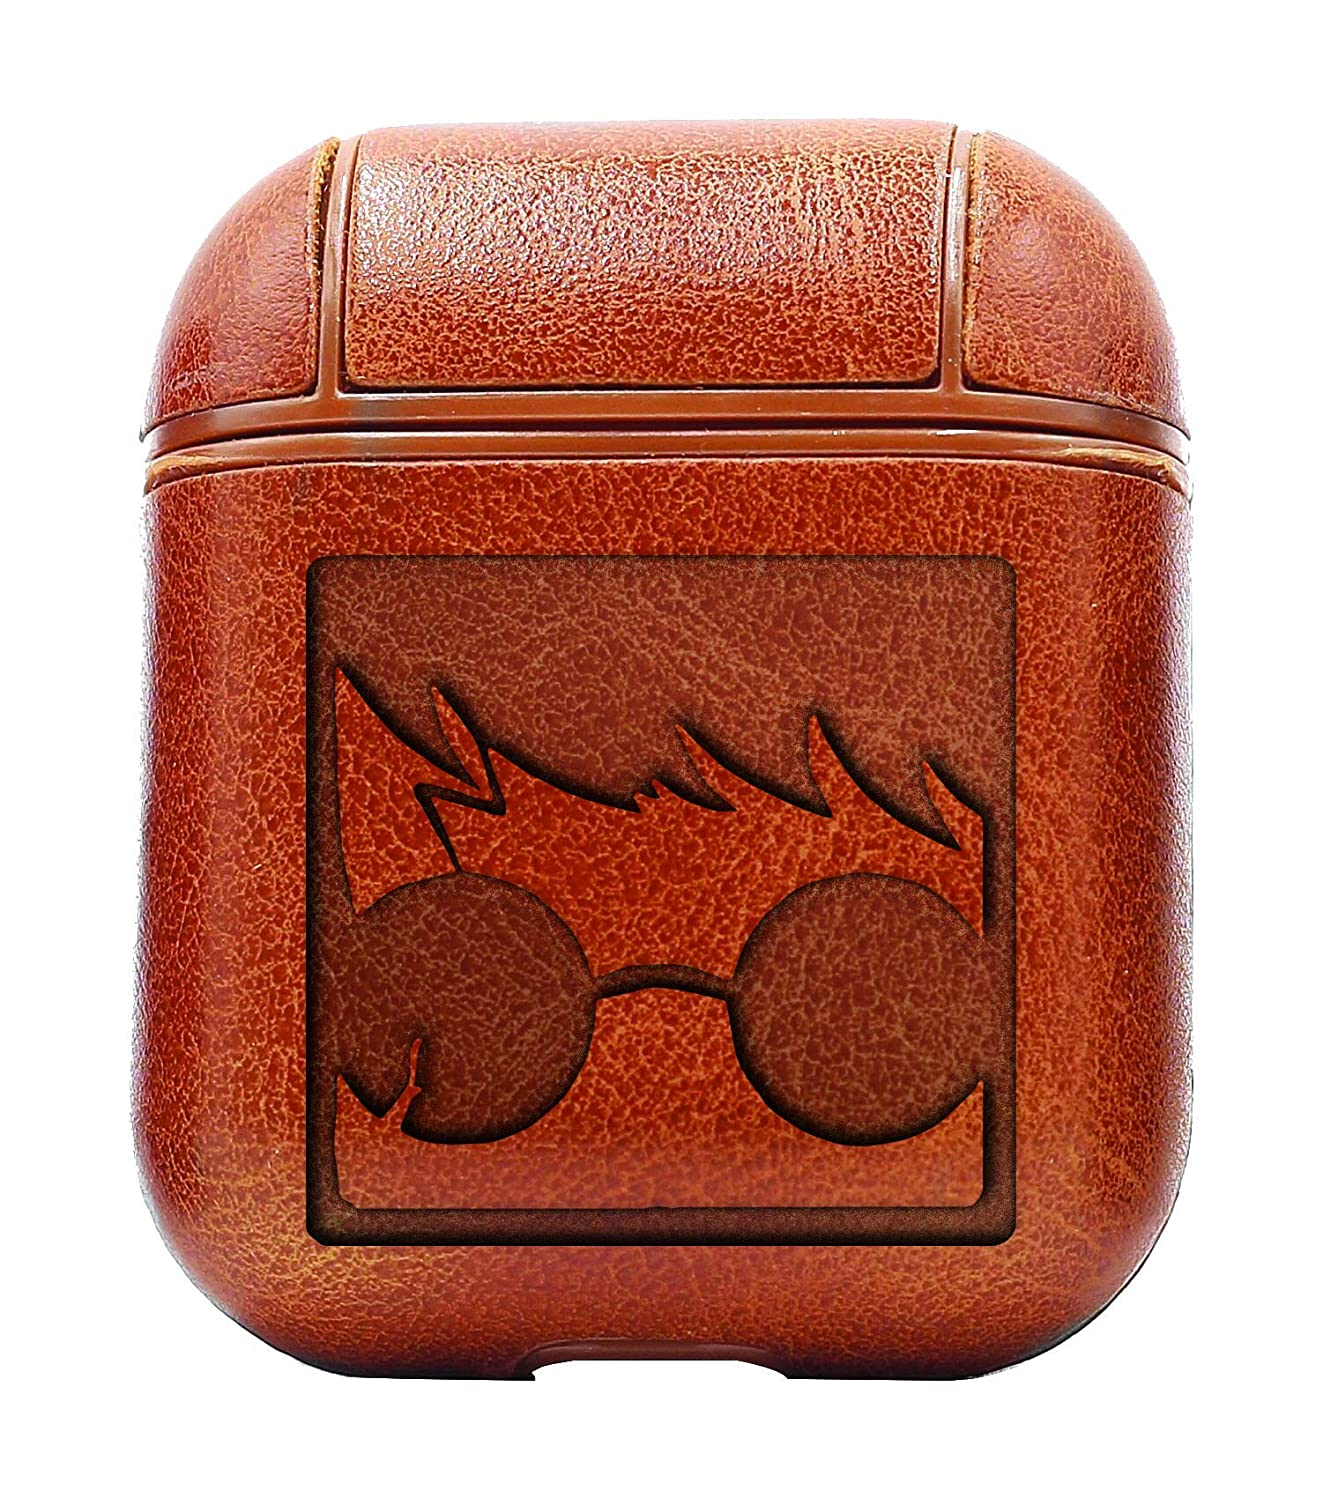 Movie Film Harry Closeup (Vintage Brown) Air Pods Protective Leather Case Cover - a New Class of Luxury to Your AirPods - Premium PU Leather and Handmade exquisitely by Master Craftsmen